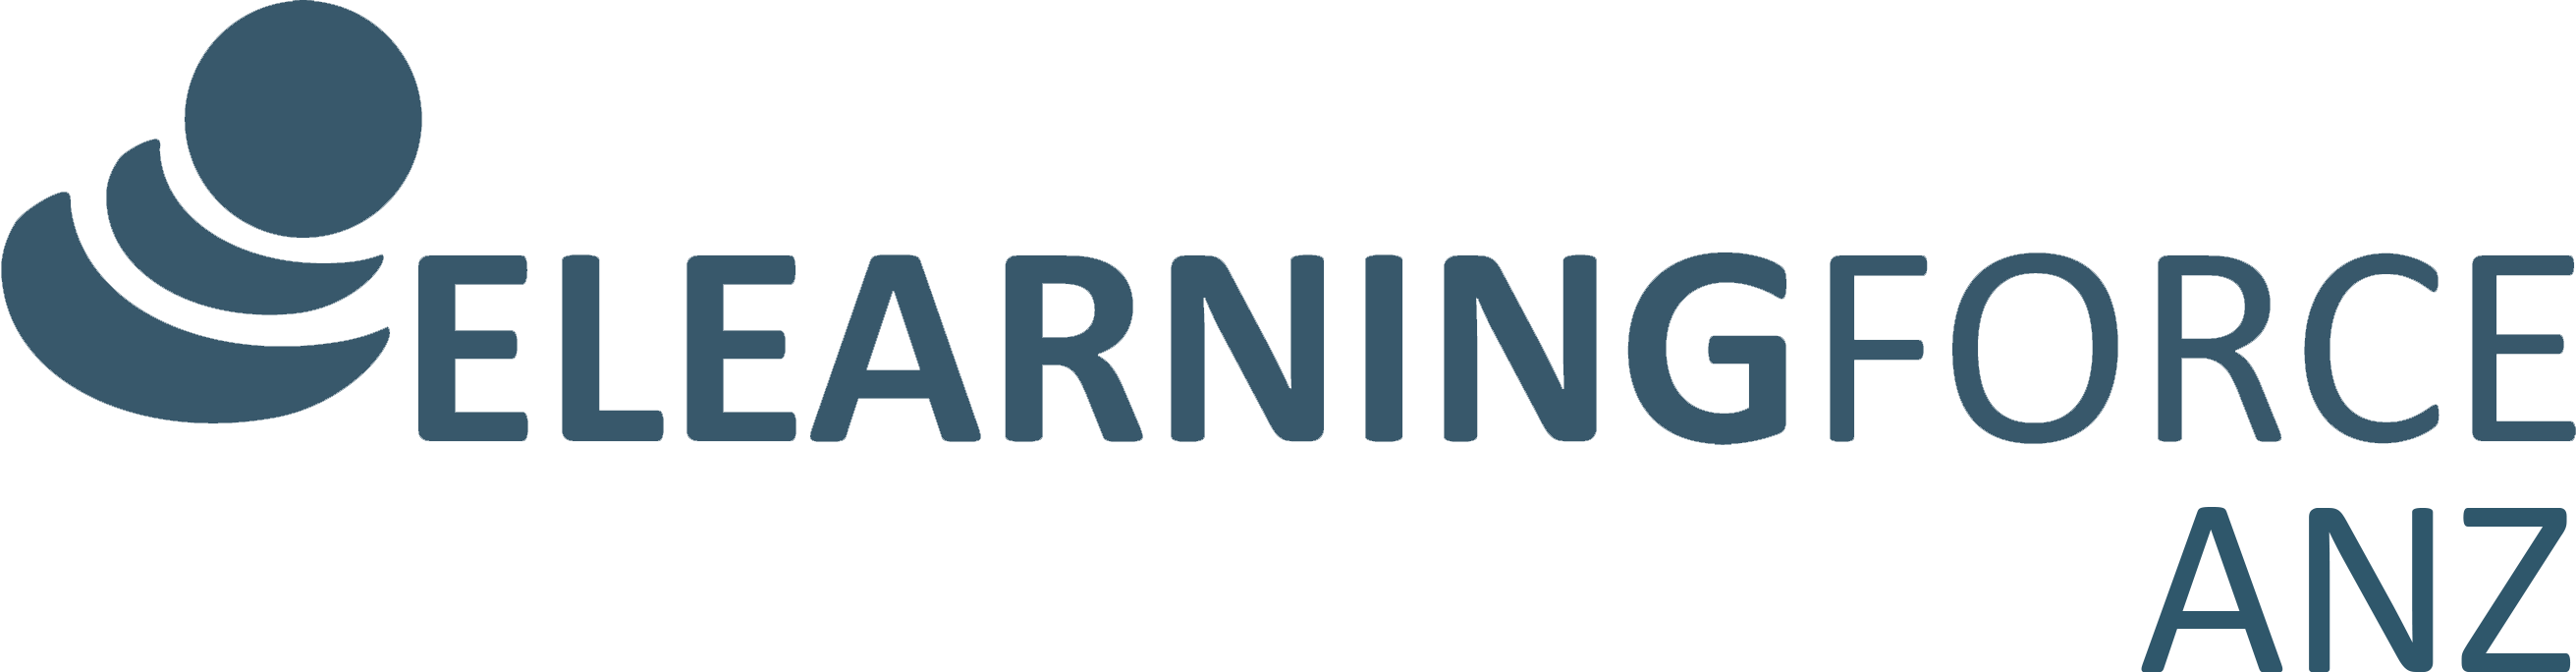 Elearning Force Australia